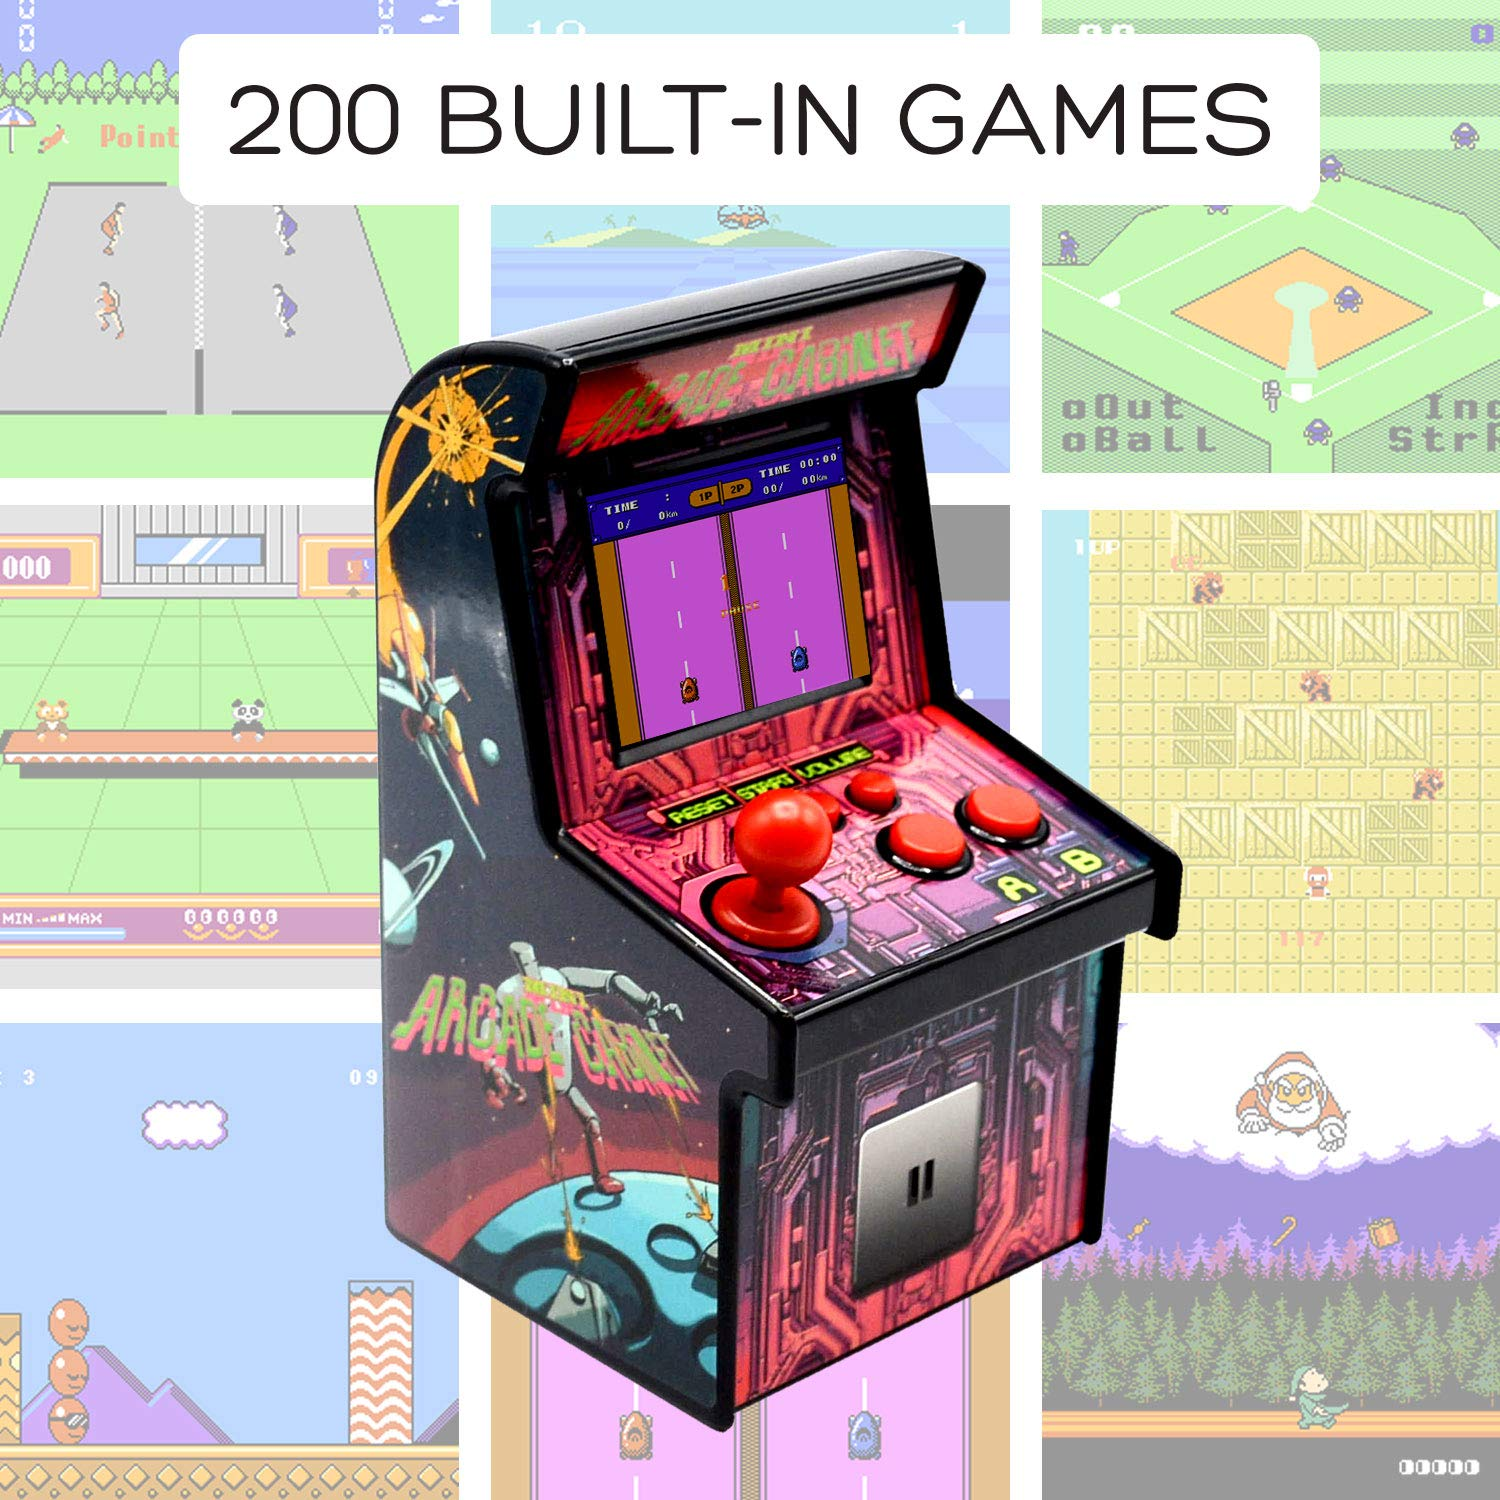 Funderdome Battery Powered Mini Arcade Game, Arcade Machine, Retro Tiny Video Game Arcade Cabinet, Portable Electronic Handheld Gaming Console for Kids with 200 Classic Video Games by Funderdome (Image #2)